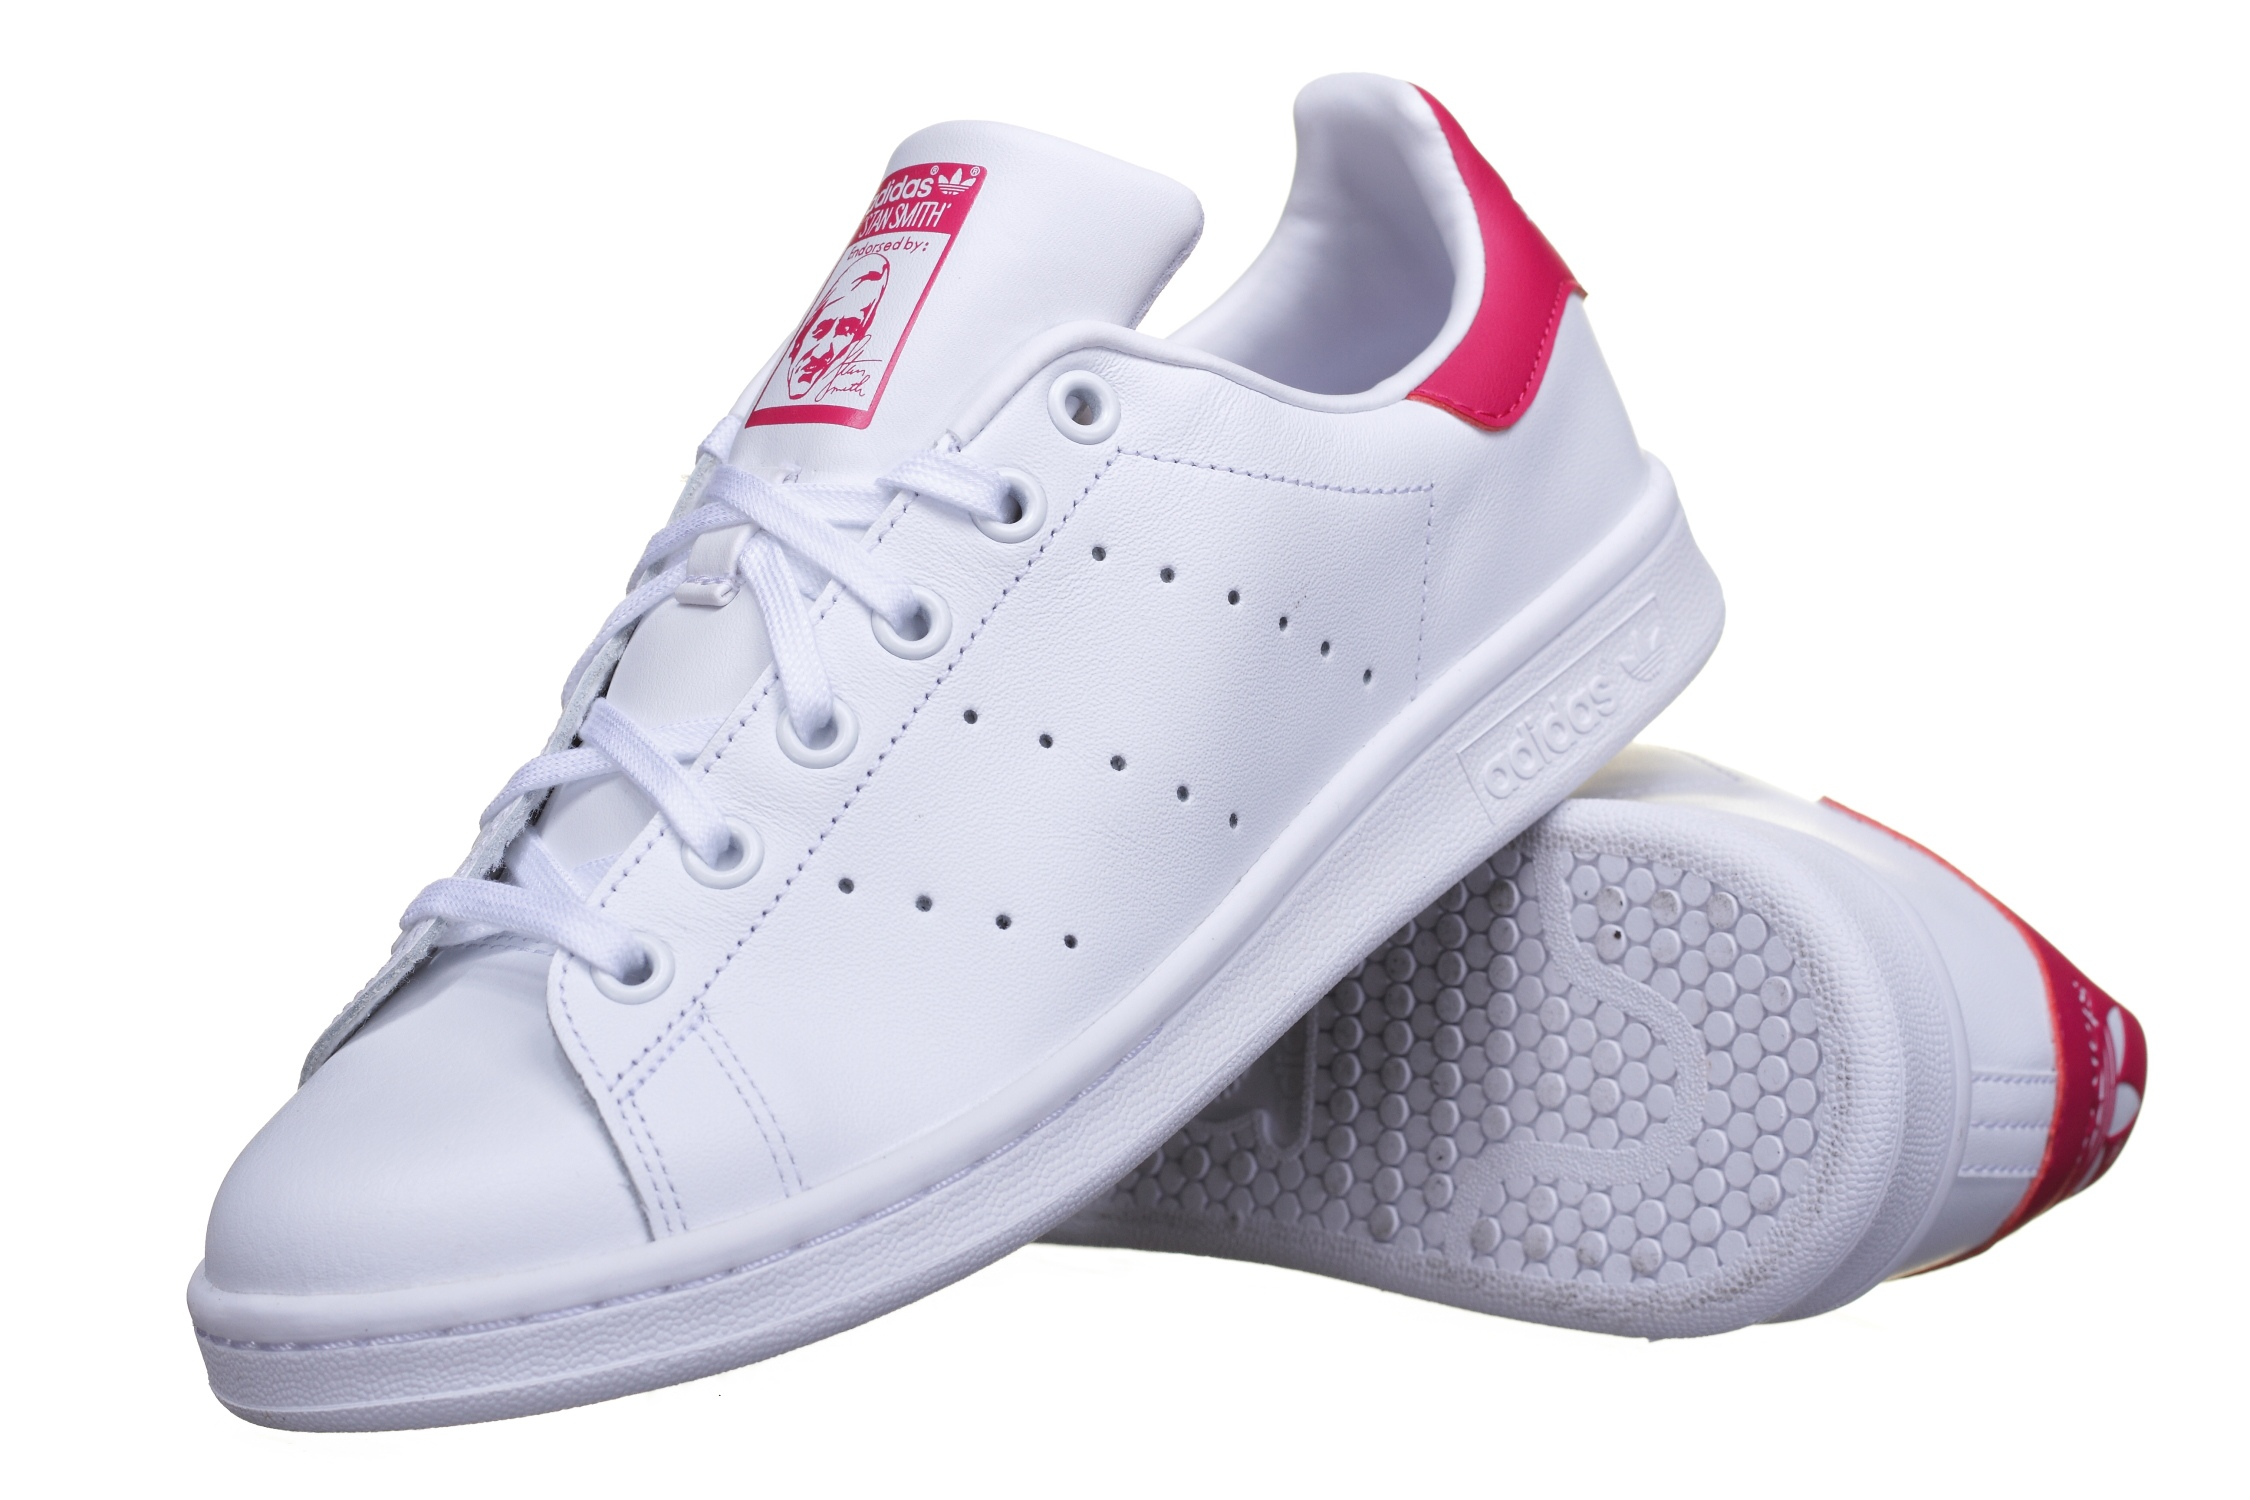 http://www.leadermode.com/82653/adidas-stan-smith-j-b32703-blanc-rose.jpg